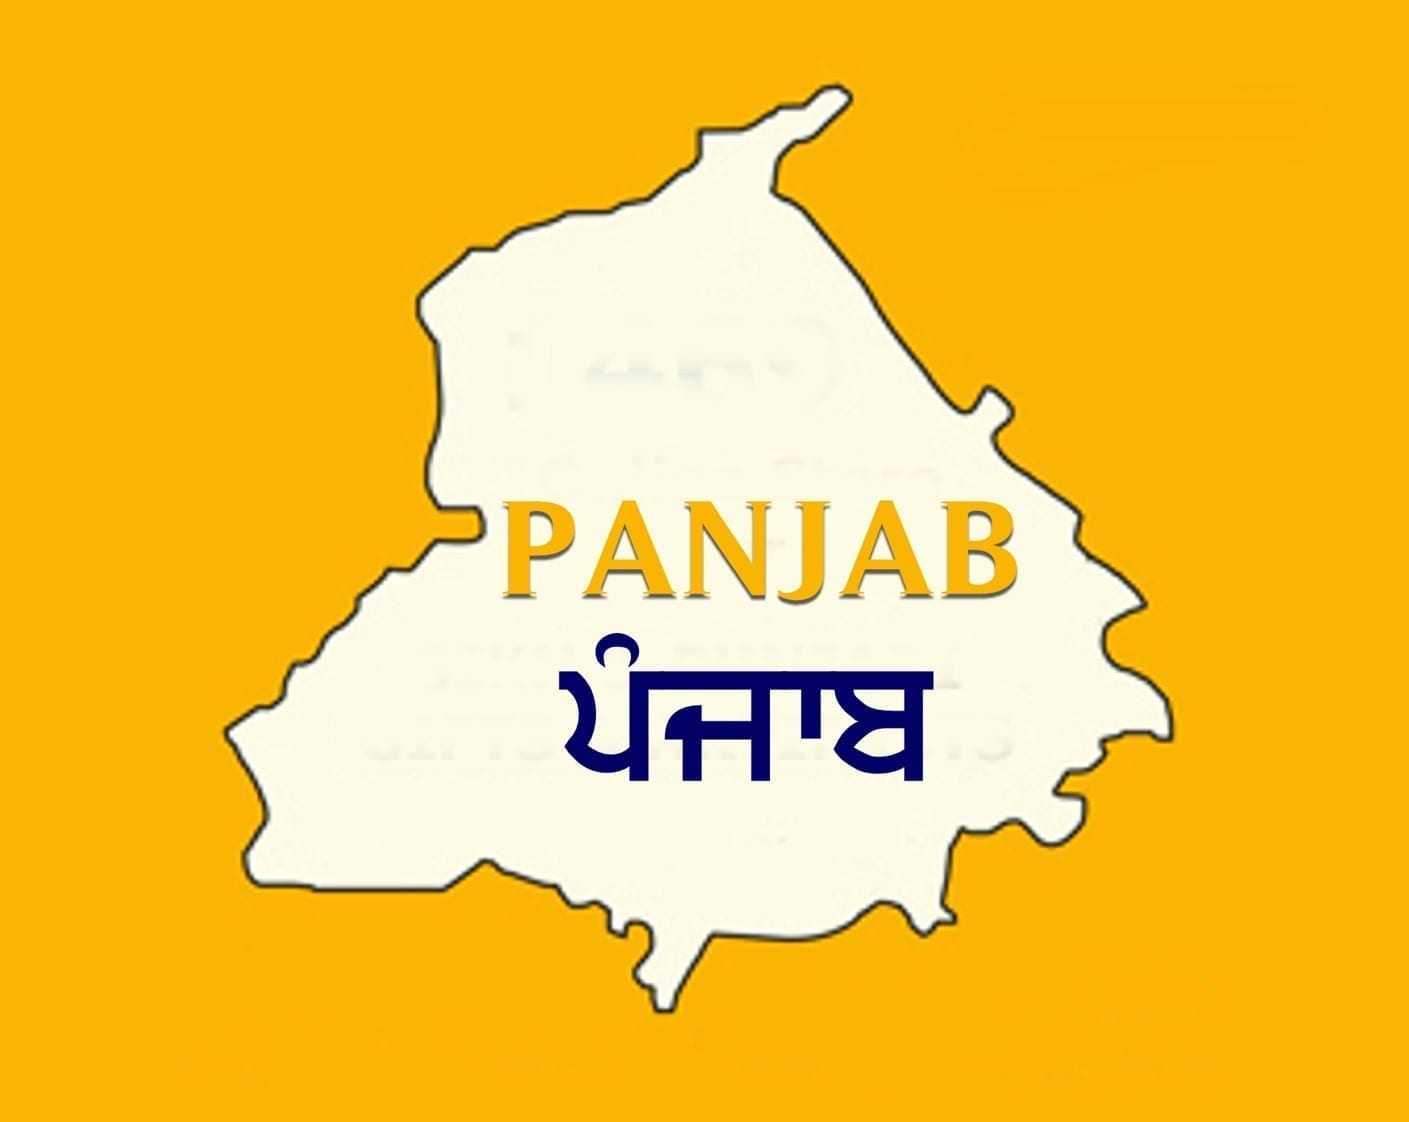 aboutp population in punjabi Find out interesting and informational maps of punjab province of pakistan.